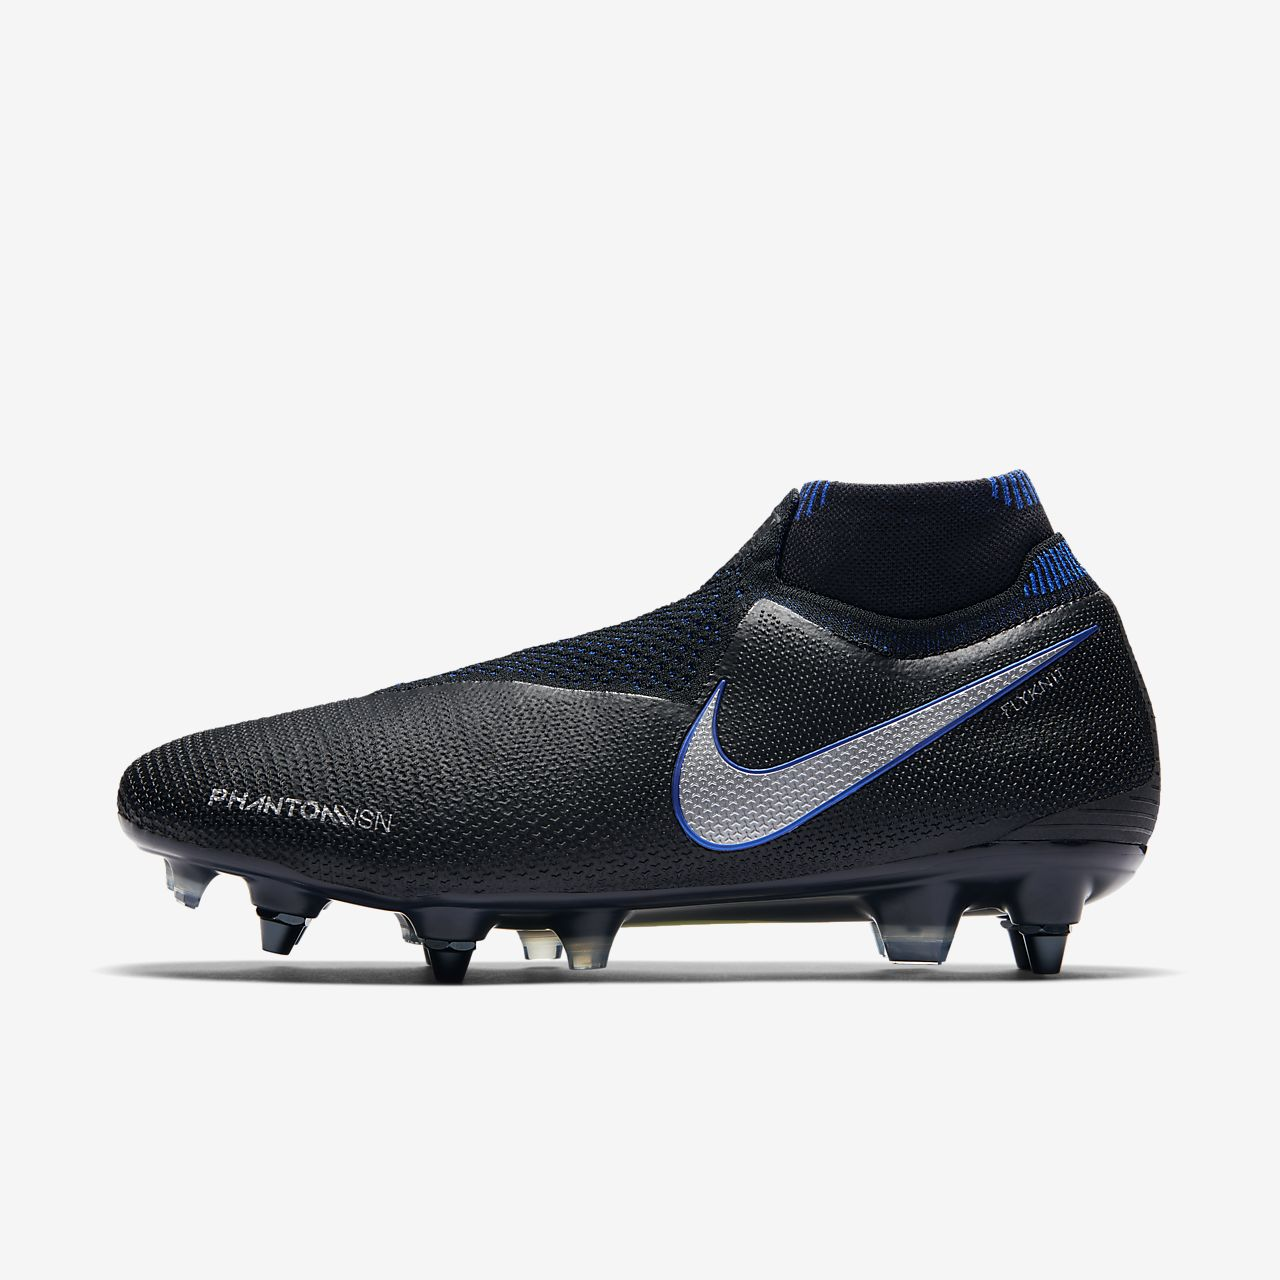 Korki piłkarskie Nike Phantom Vision Elite Dynamic Fit Anti-Clog SG-PRO